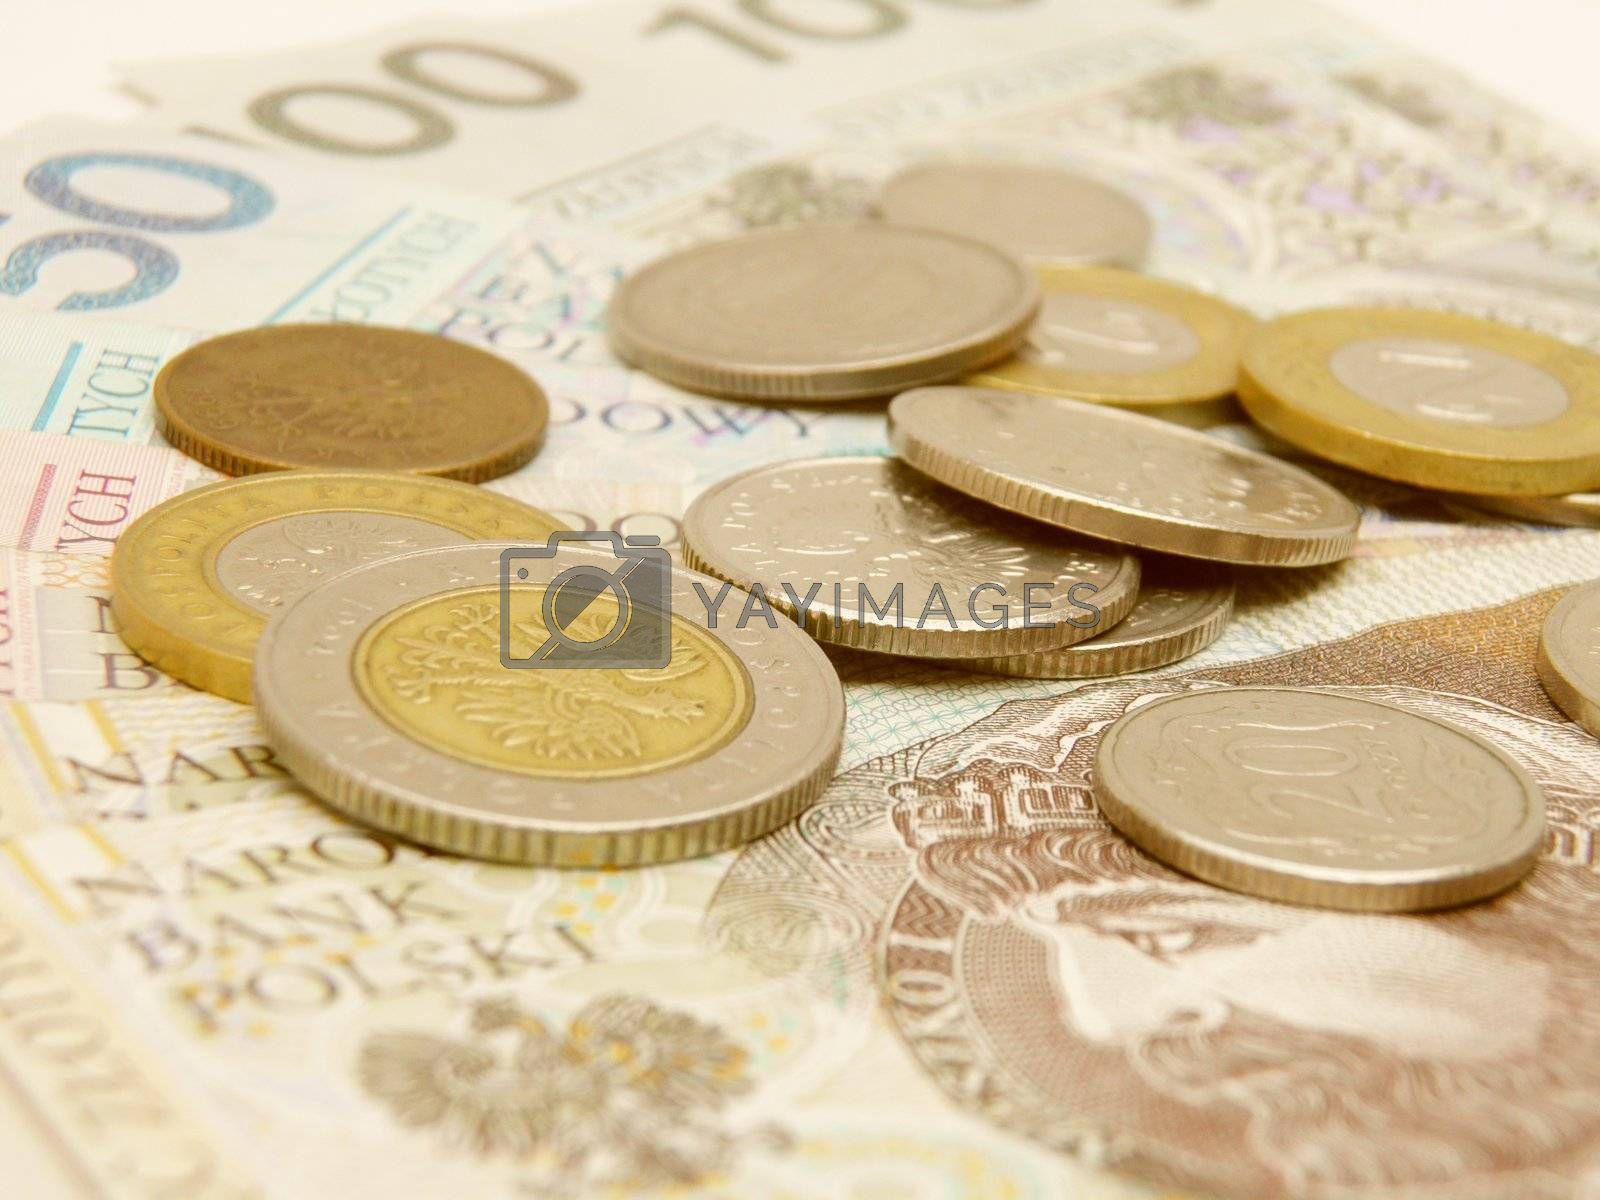 Polish zloty currency money - banknotes and coins